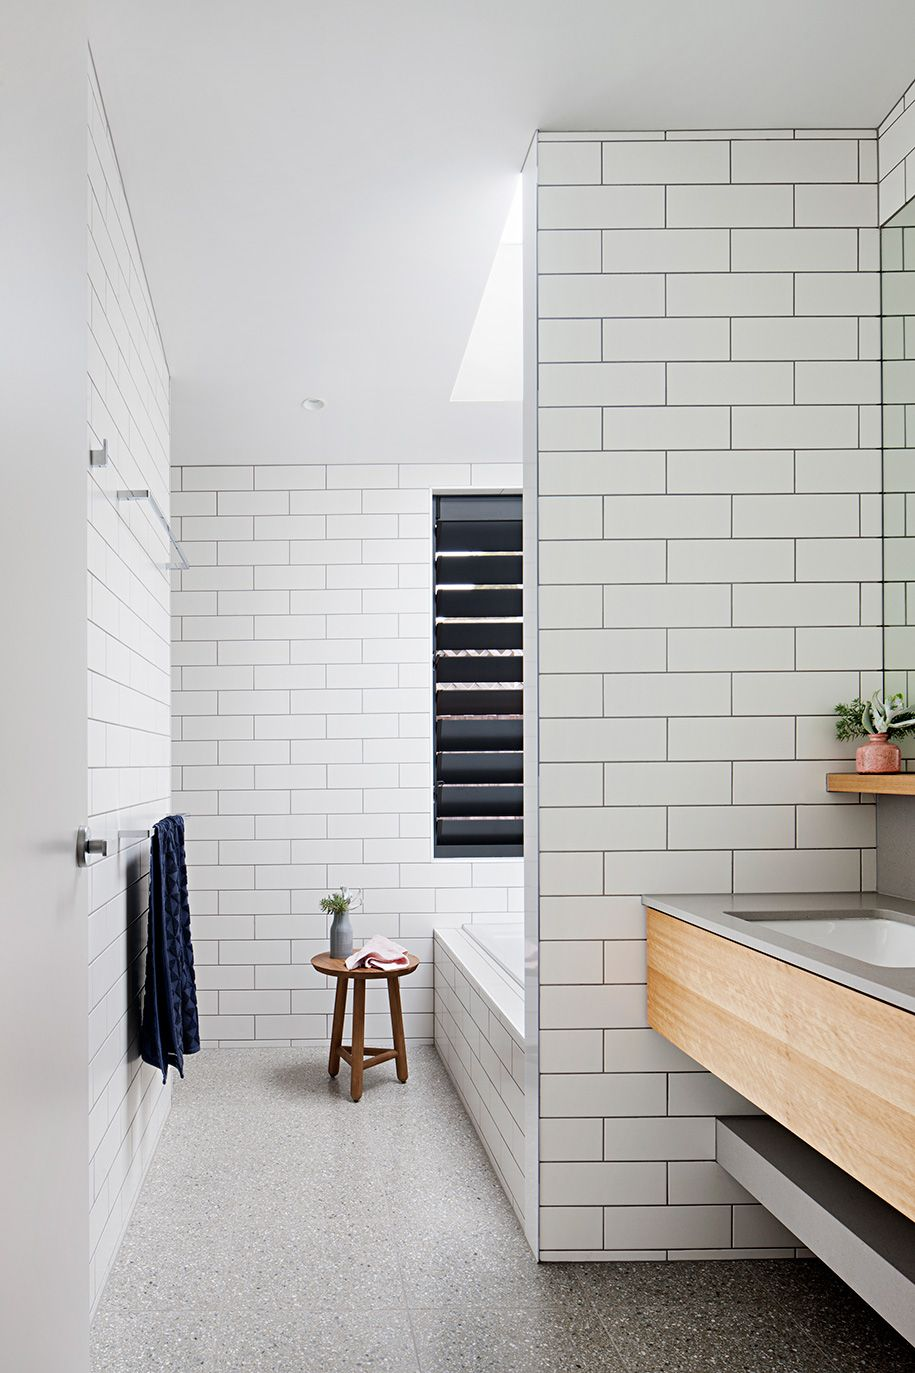 Home tour a summer abode in victoria crisp white bathroom with home tour a summer abode in victoria crisp white bathroom with oversized subway tile bathroom pinterest subway tiles house and bath room dailygadgetfo Image collections